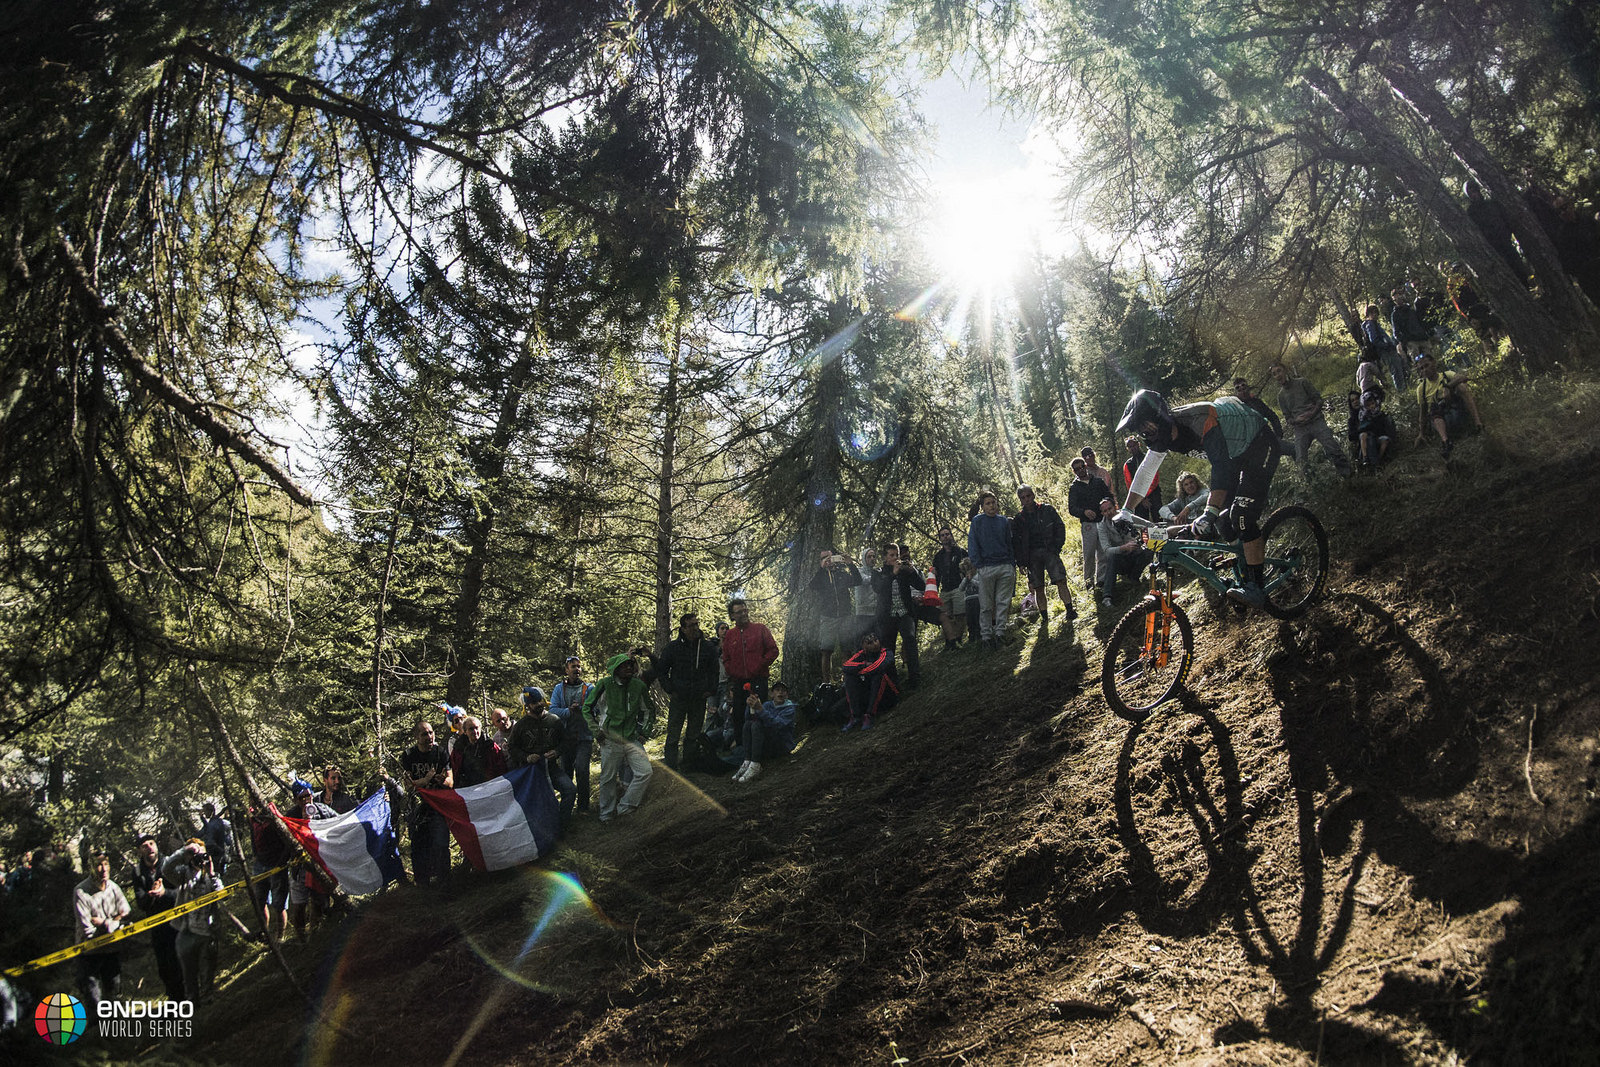 Yeti's Rude has a commanding lead, but he'll need to finish well to wrap up his second straight series title. Photo courtesy Enduro World Series